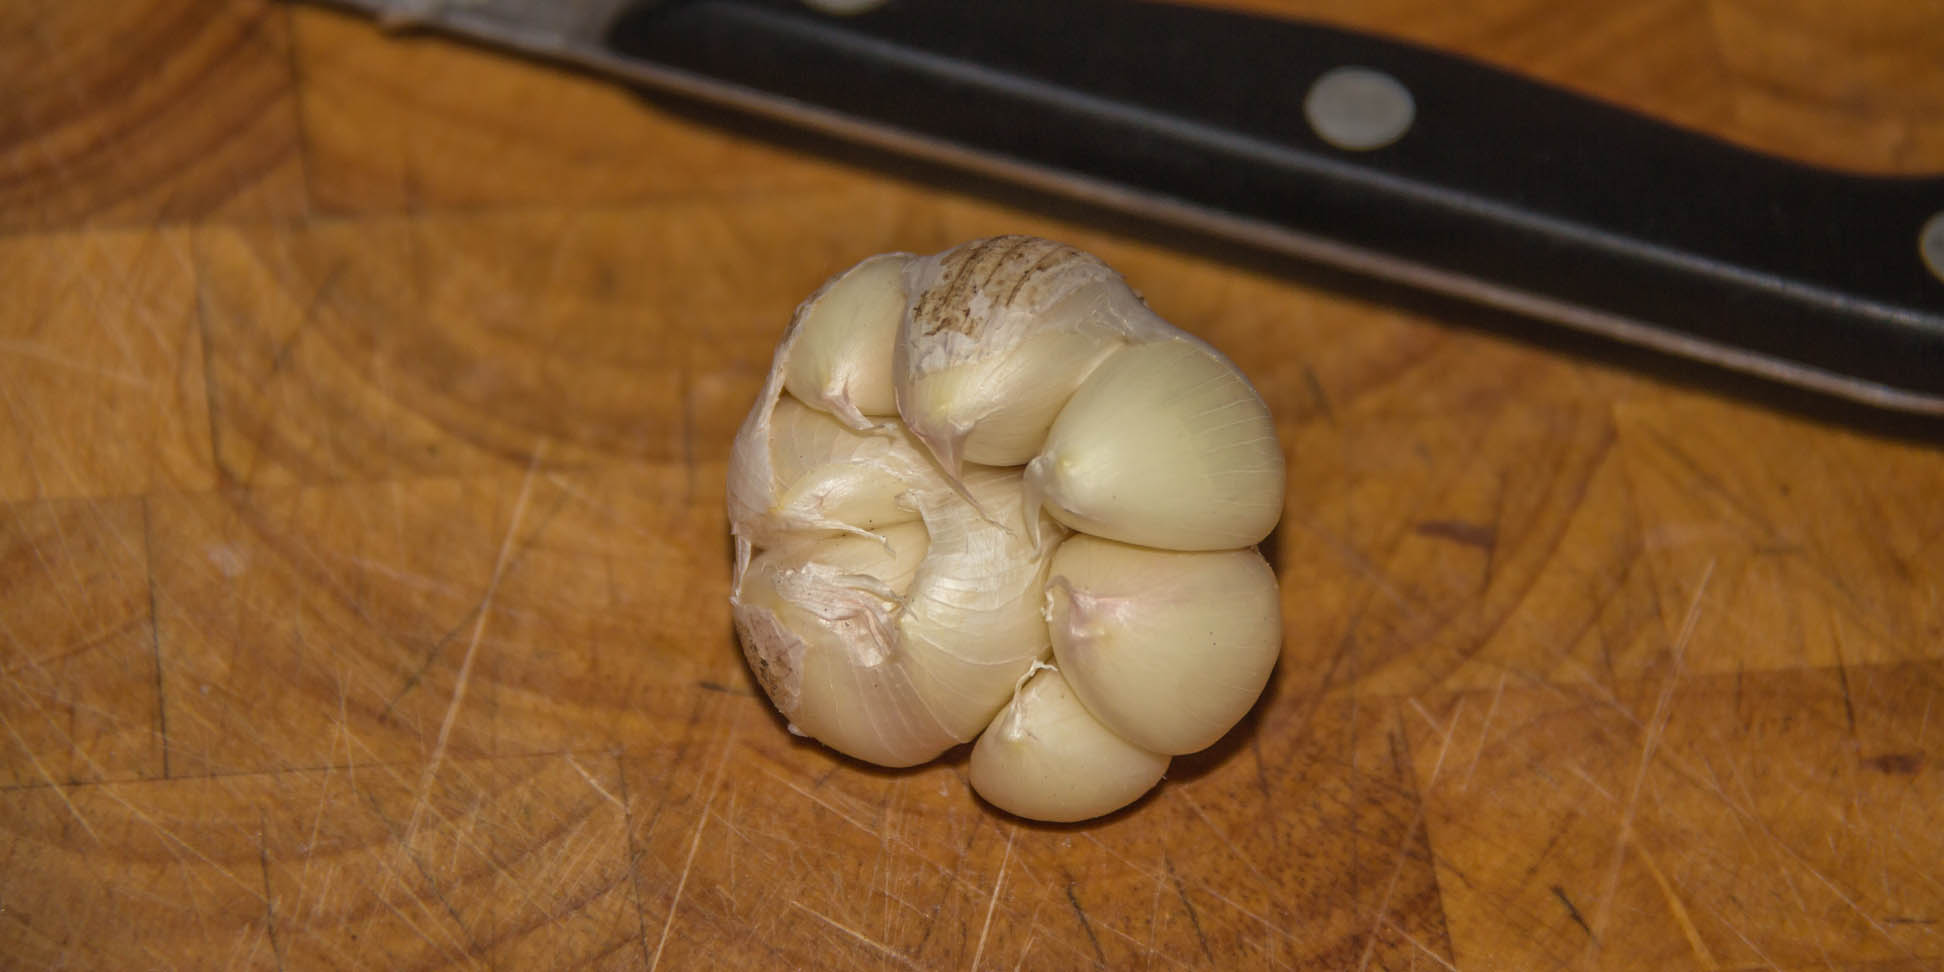 Opened cloves of garlic on chopping board